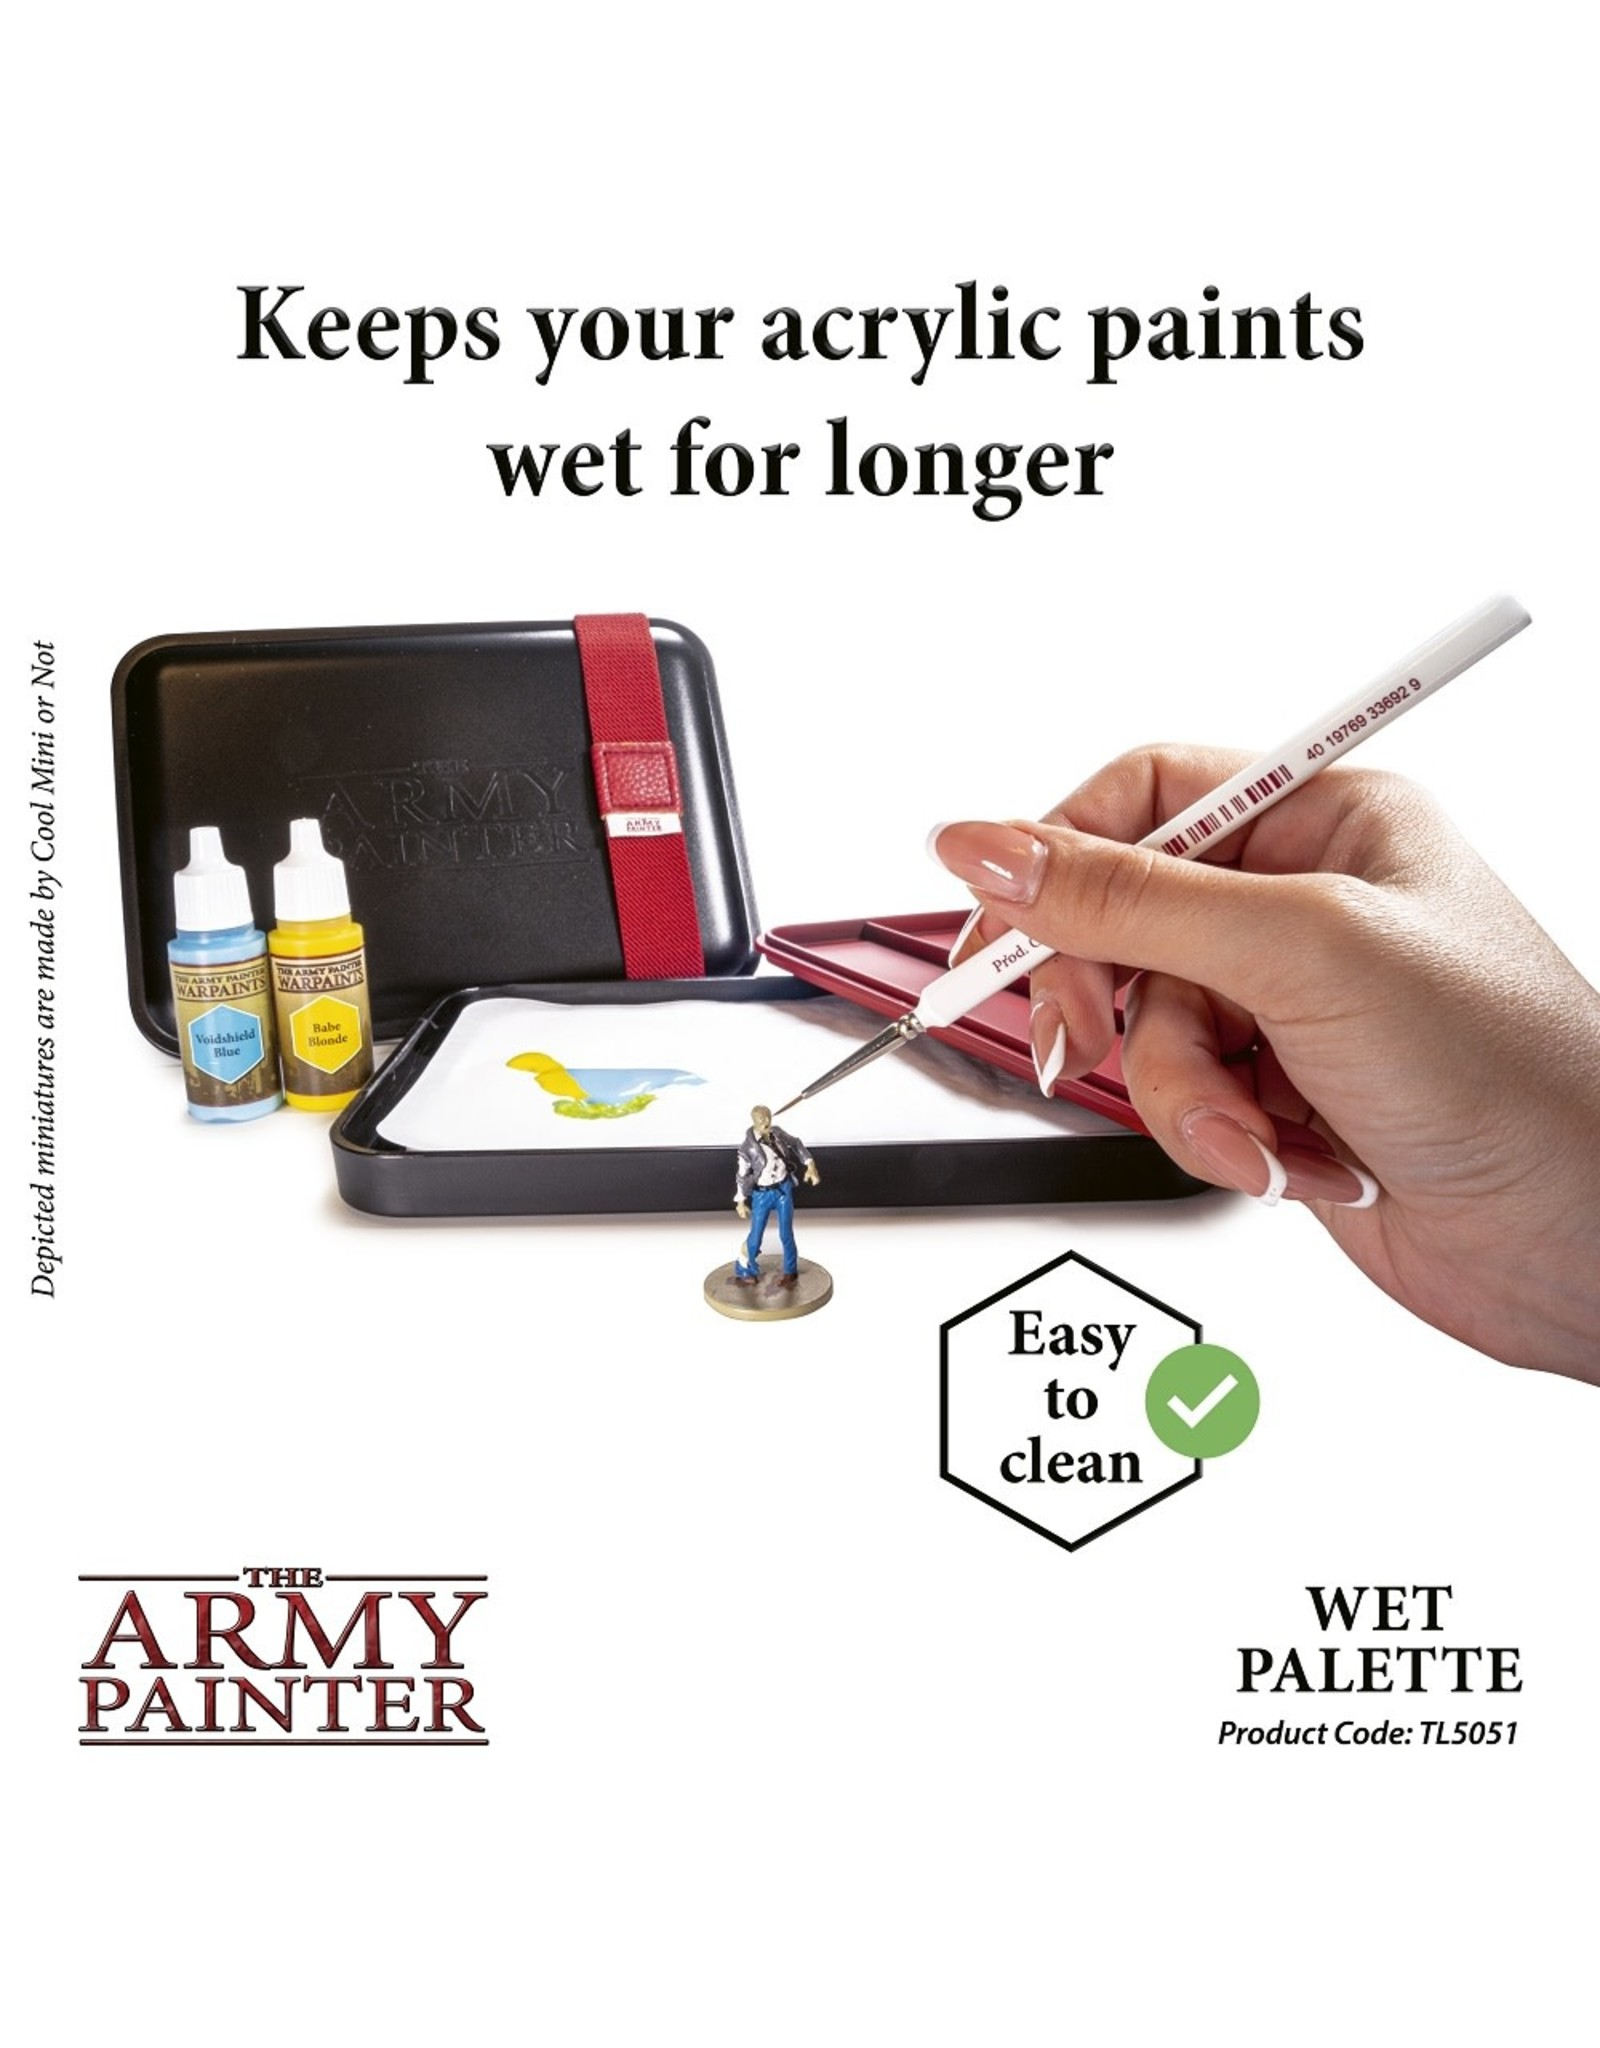 Army Painter Wet Palette